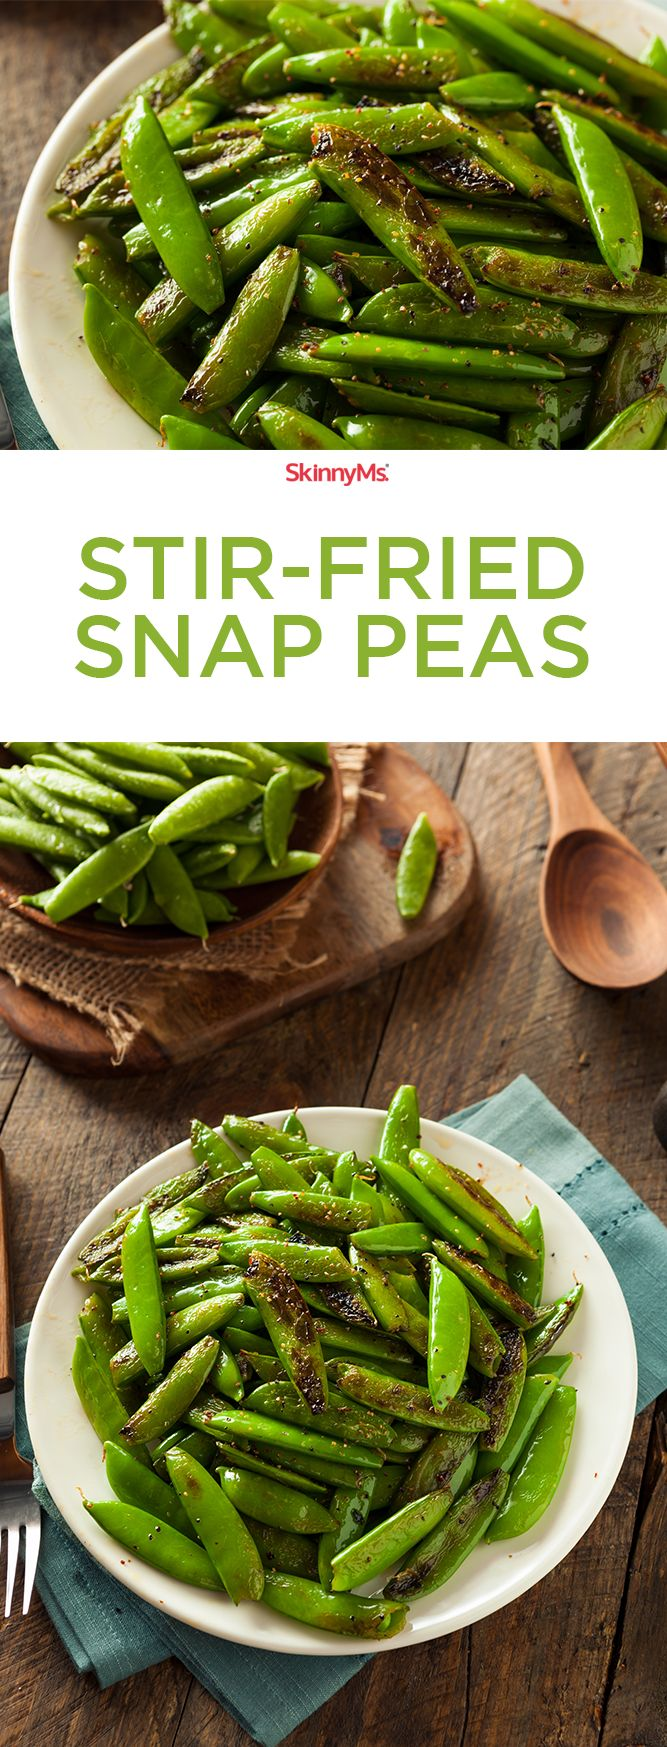 With just one ingredient and a few simple spices, these Stir-Fried Snap Peas steal virtually no time from your schedule. Try them as a healthy side! #cleaneating #healthysides